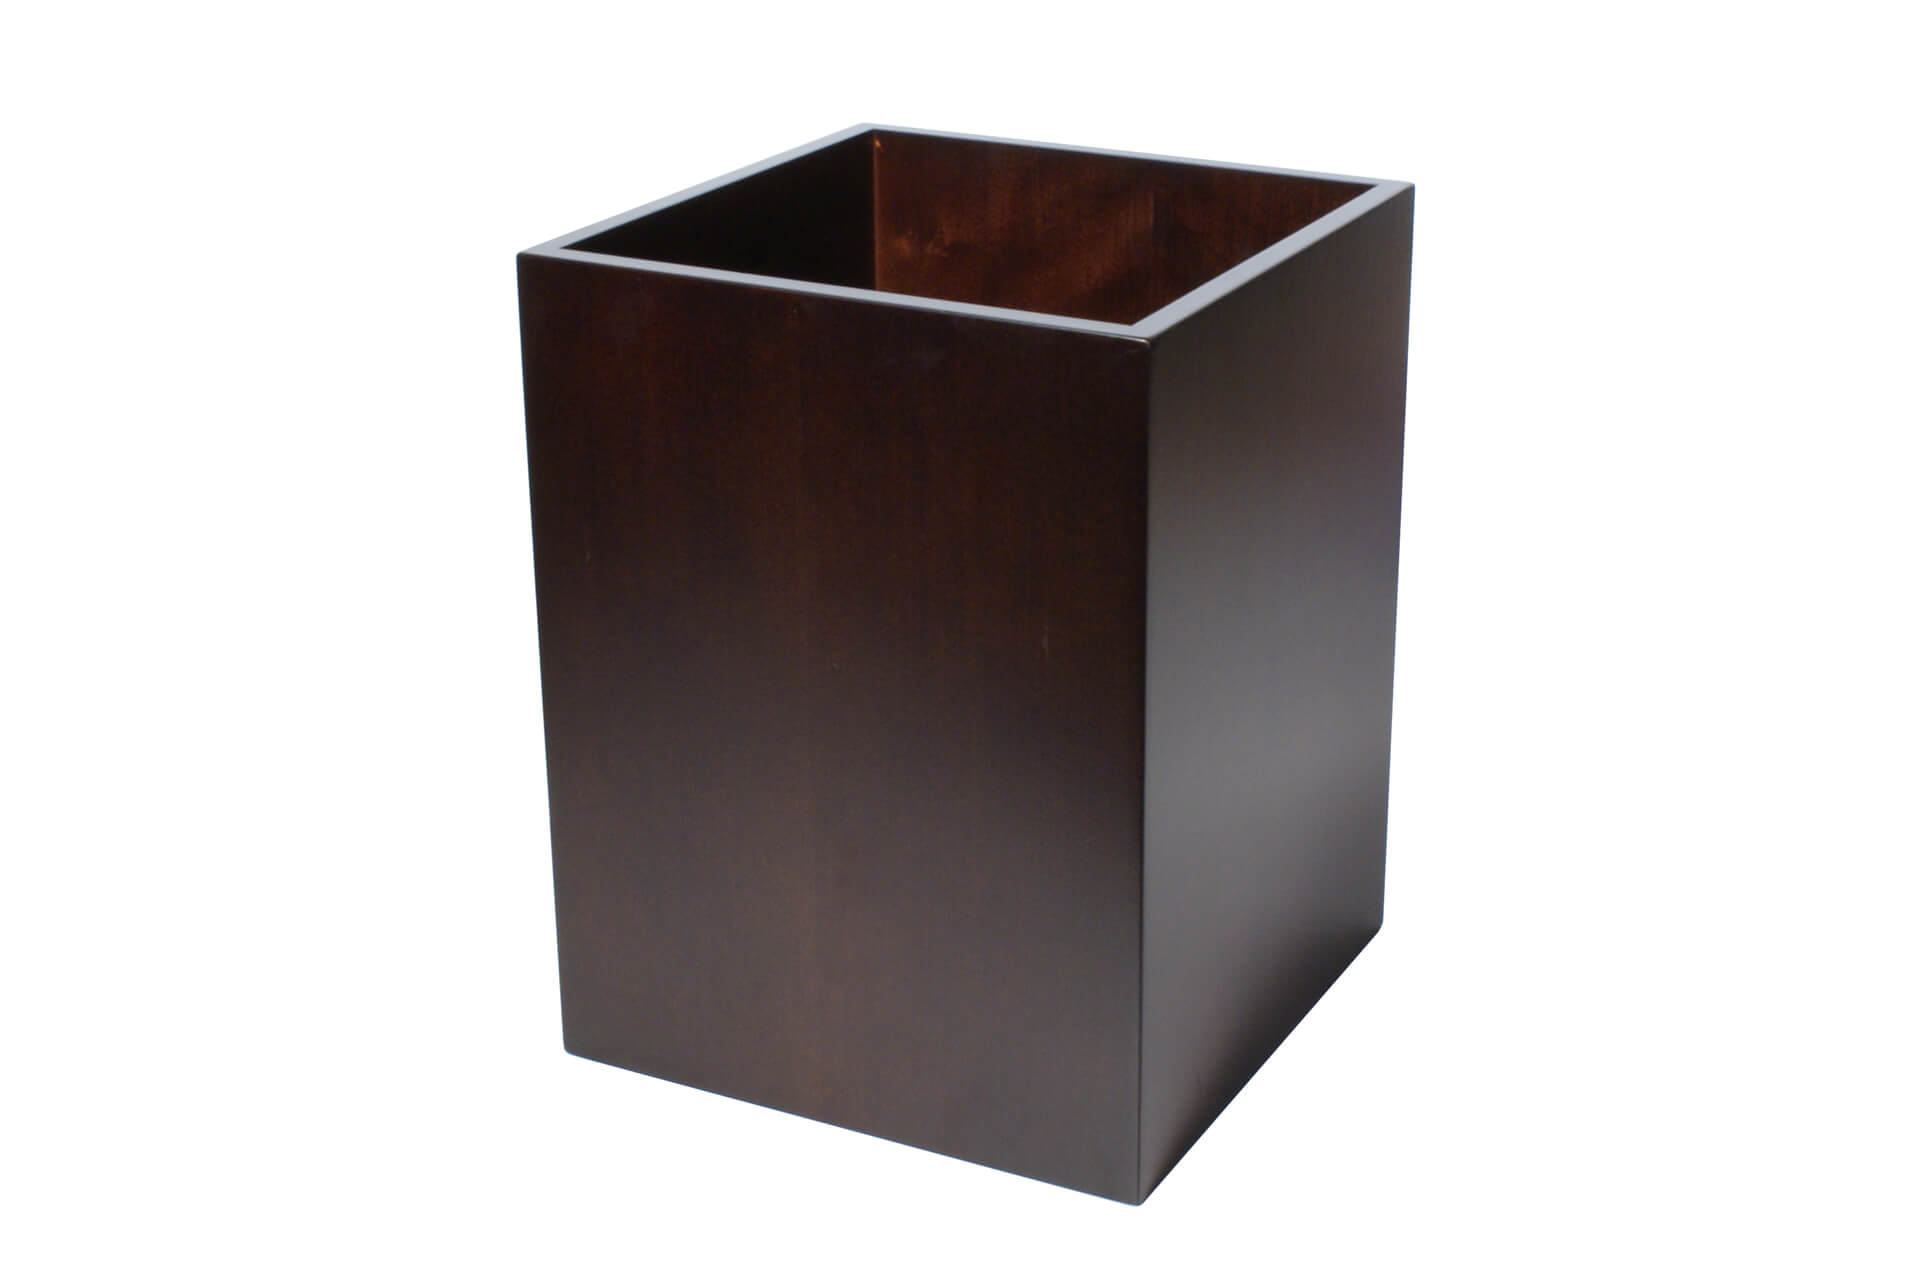 simple stylish wooden waste paper bin for hotels offices available with liners